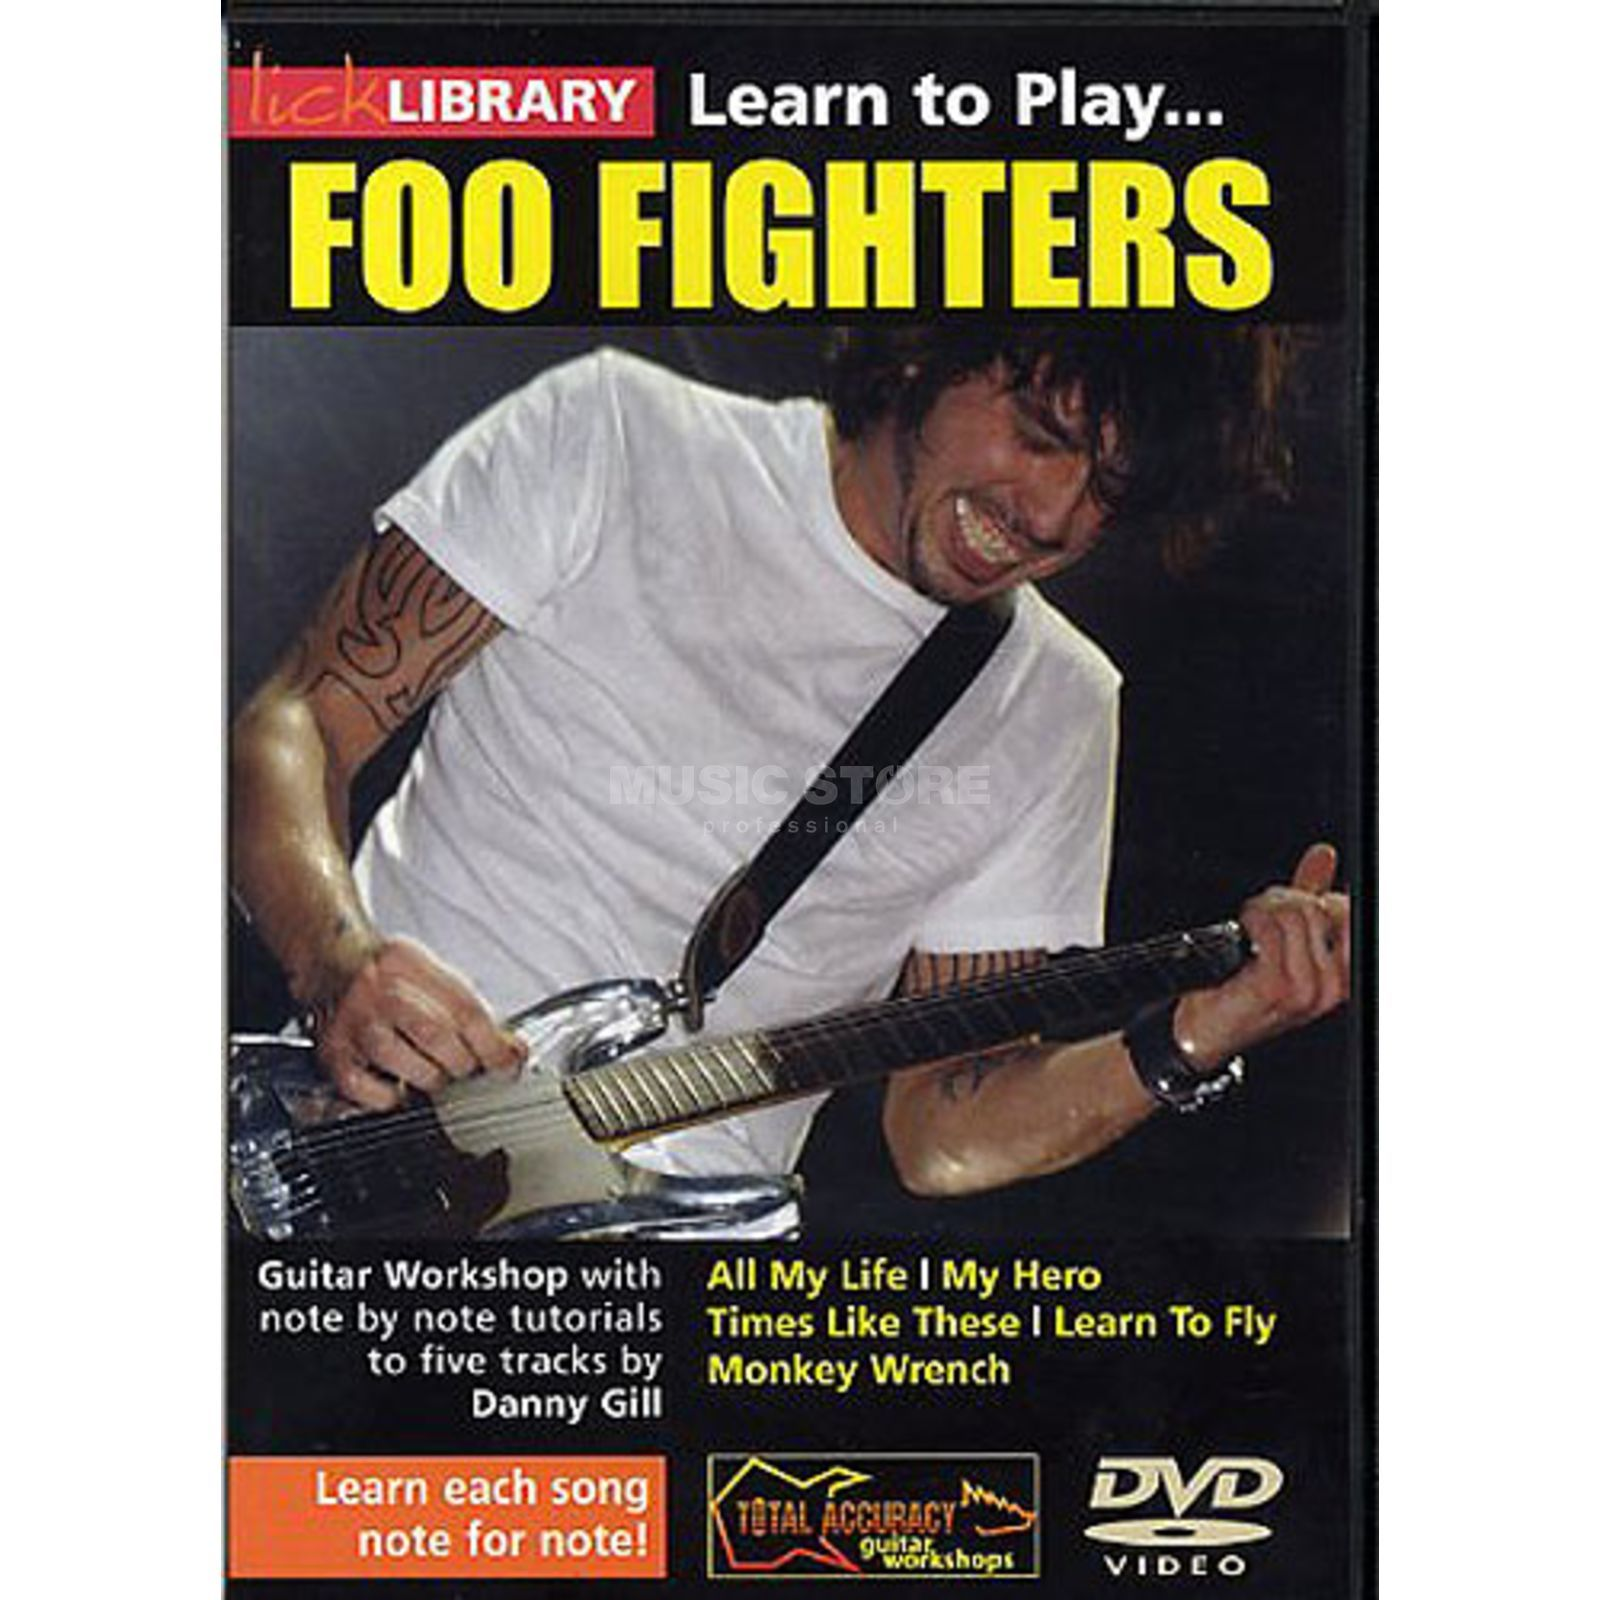 Roadrock International Lick library - Foo Fighters Learn to play (Guitar), DVD Produktbillede